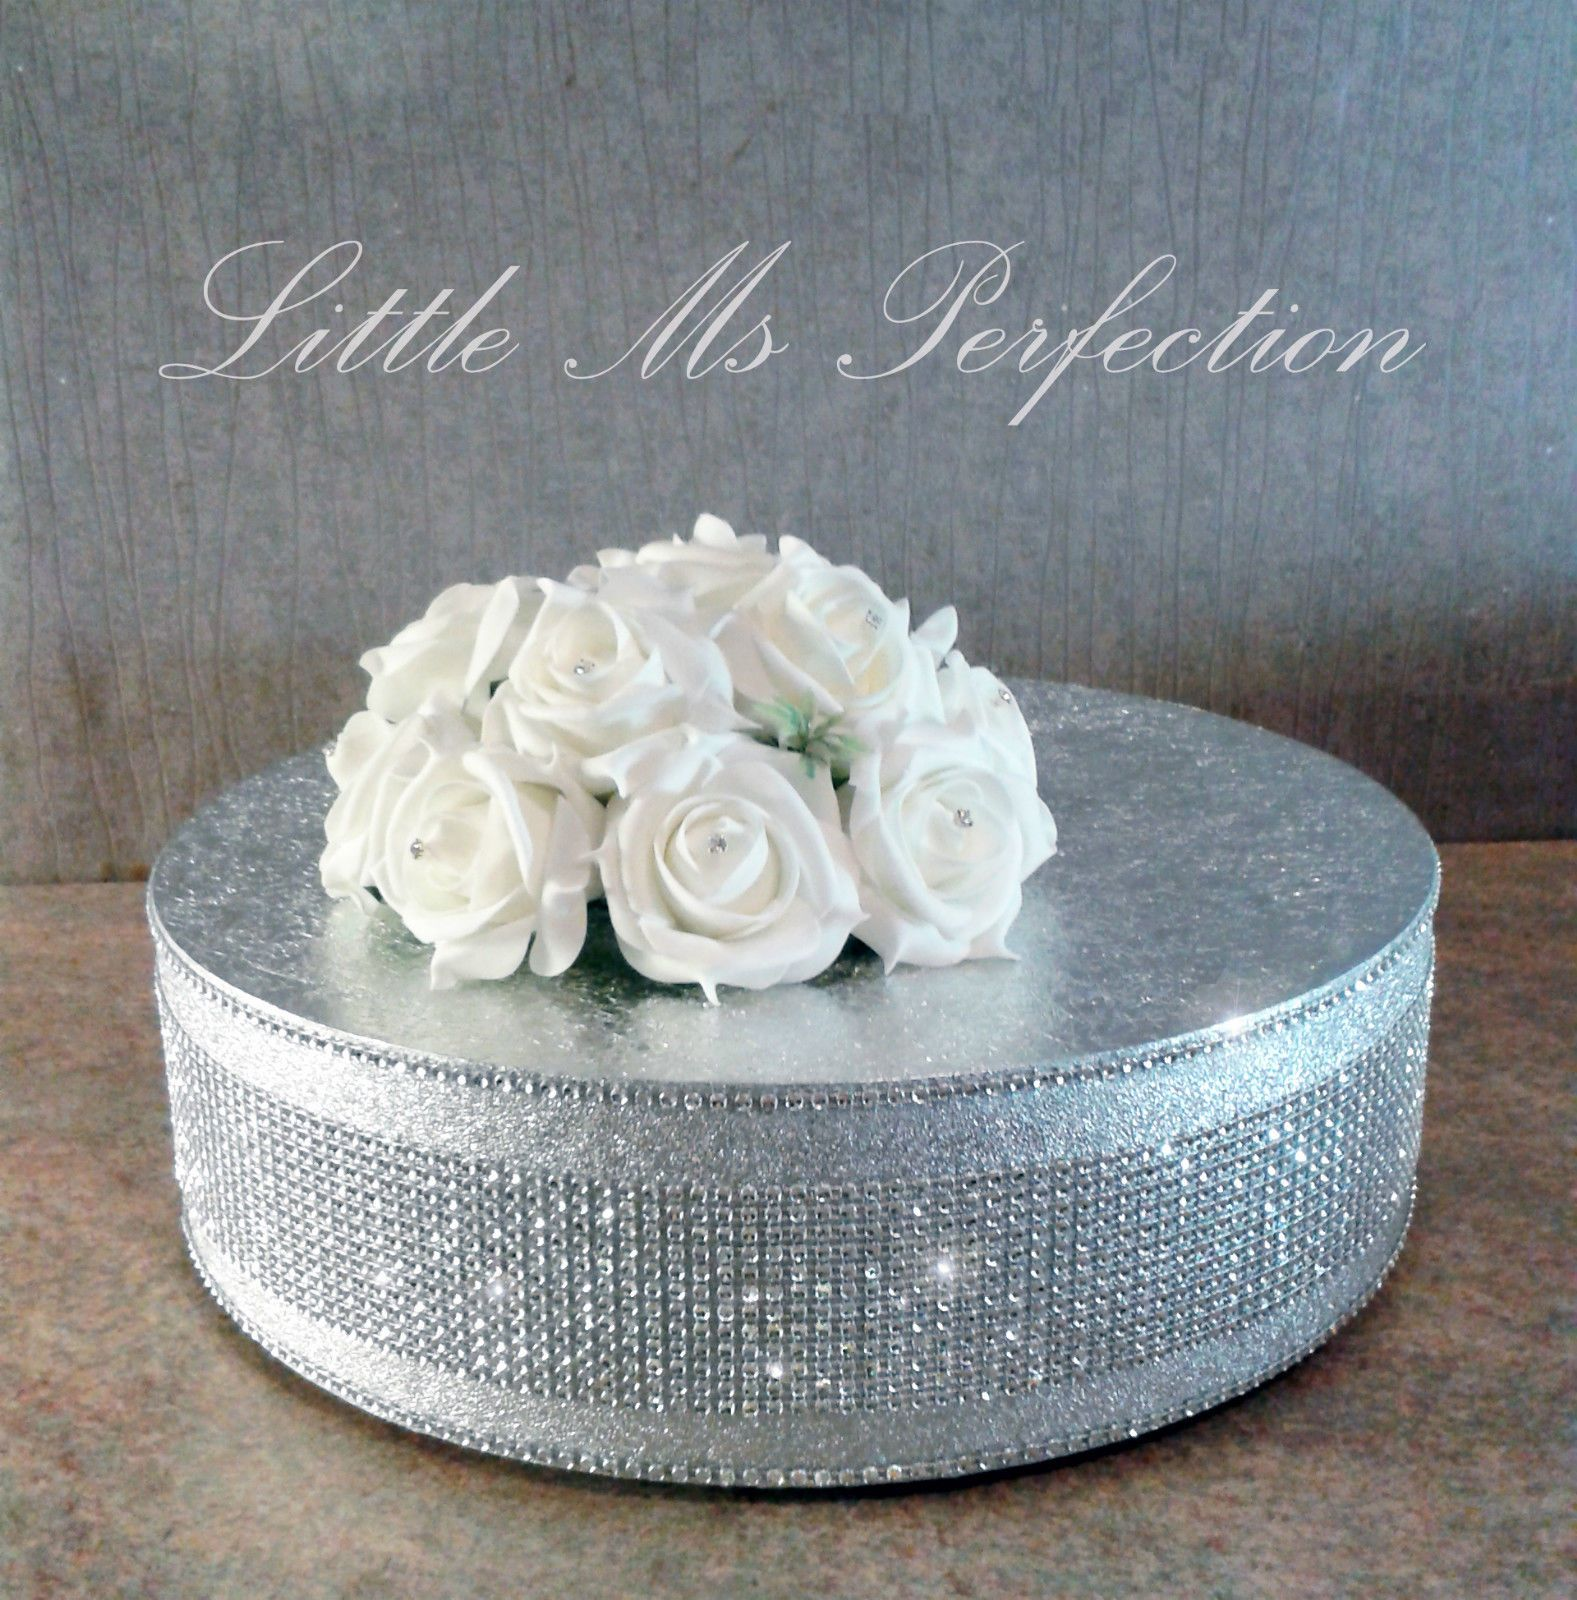 Silver diamante crystal wedding cake stand display pedestal sparkly